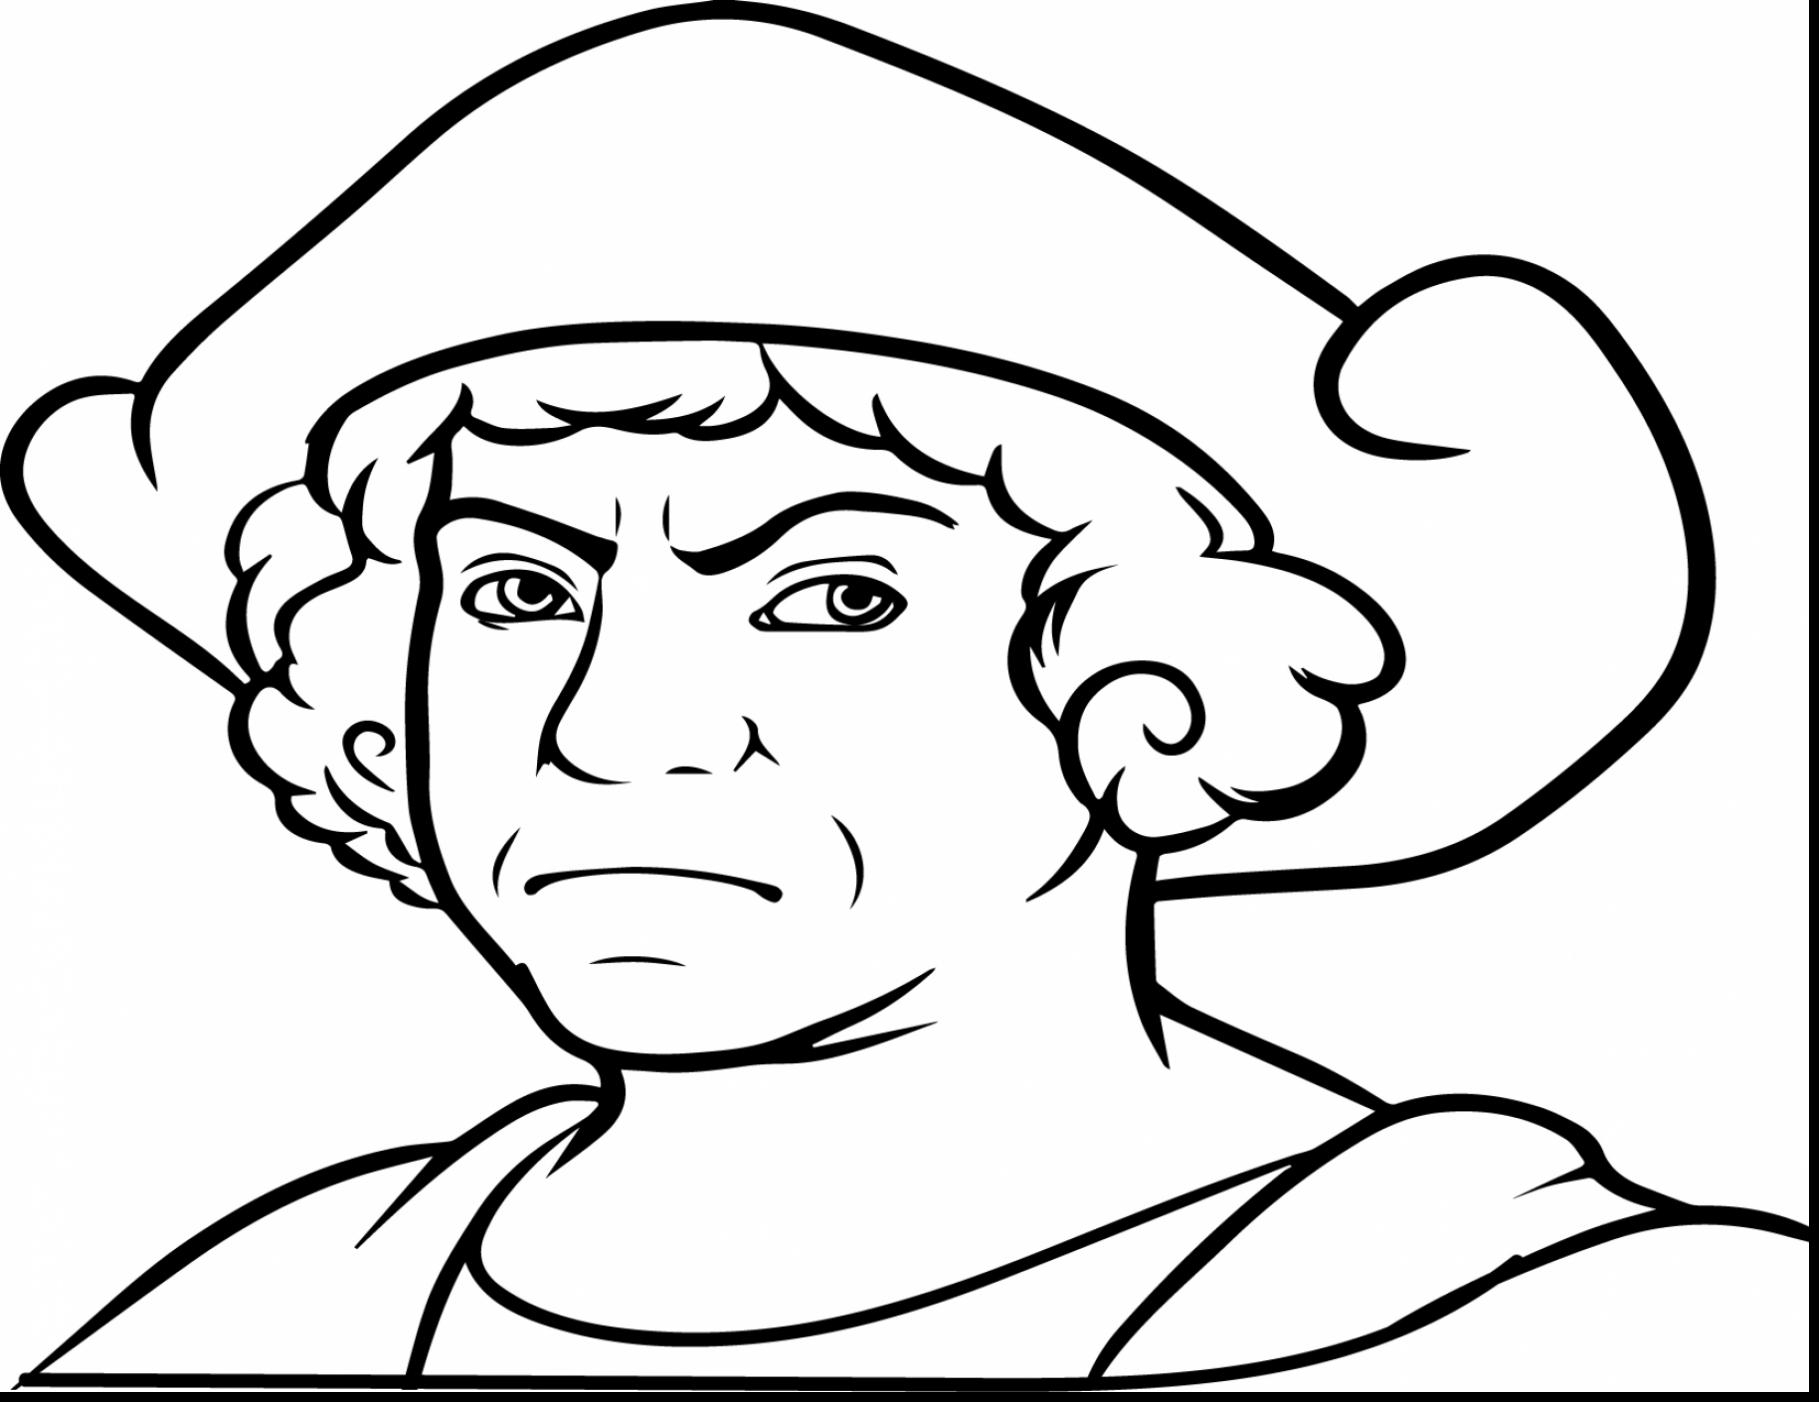 Christopher columbus clipart outline. Drawing at getdrawings com